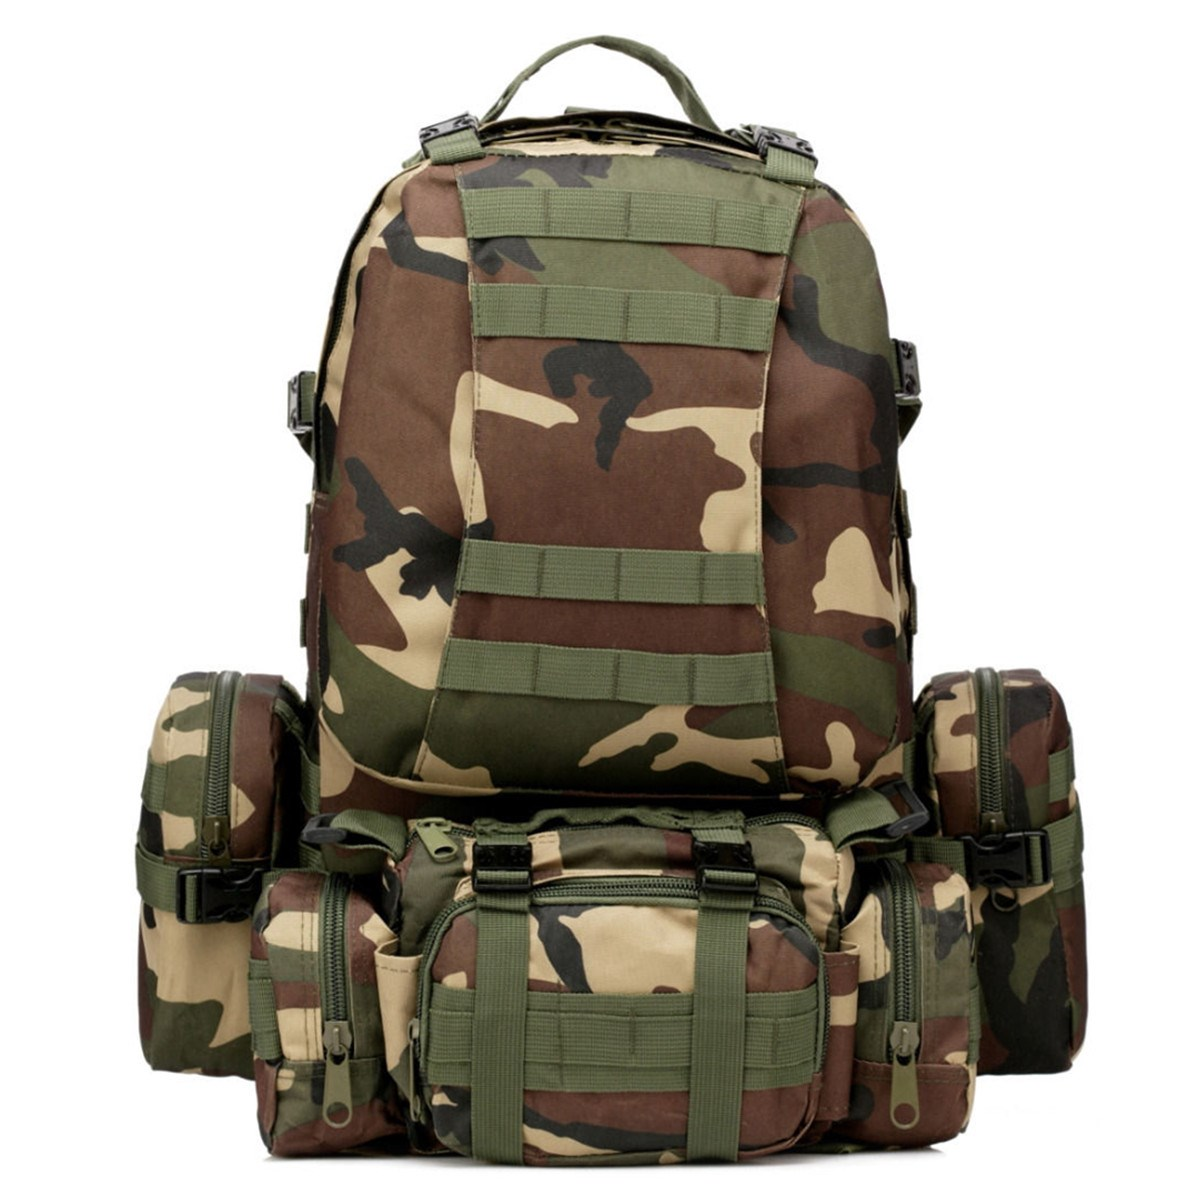 55L 600D nylon Military Tactical Backpack Sport 3D Molle Backpack wearproof Camping hiking Rucksack mountaineering climbing Bag<br>